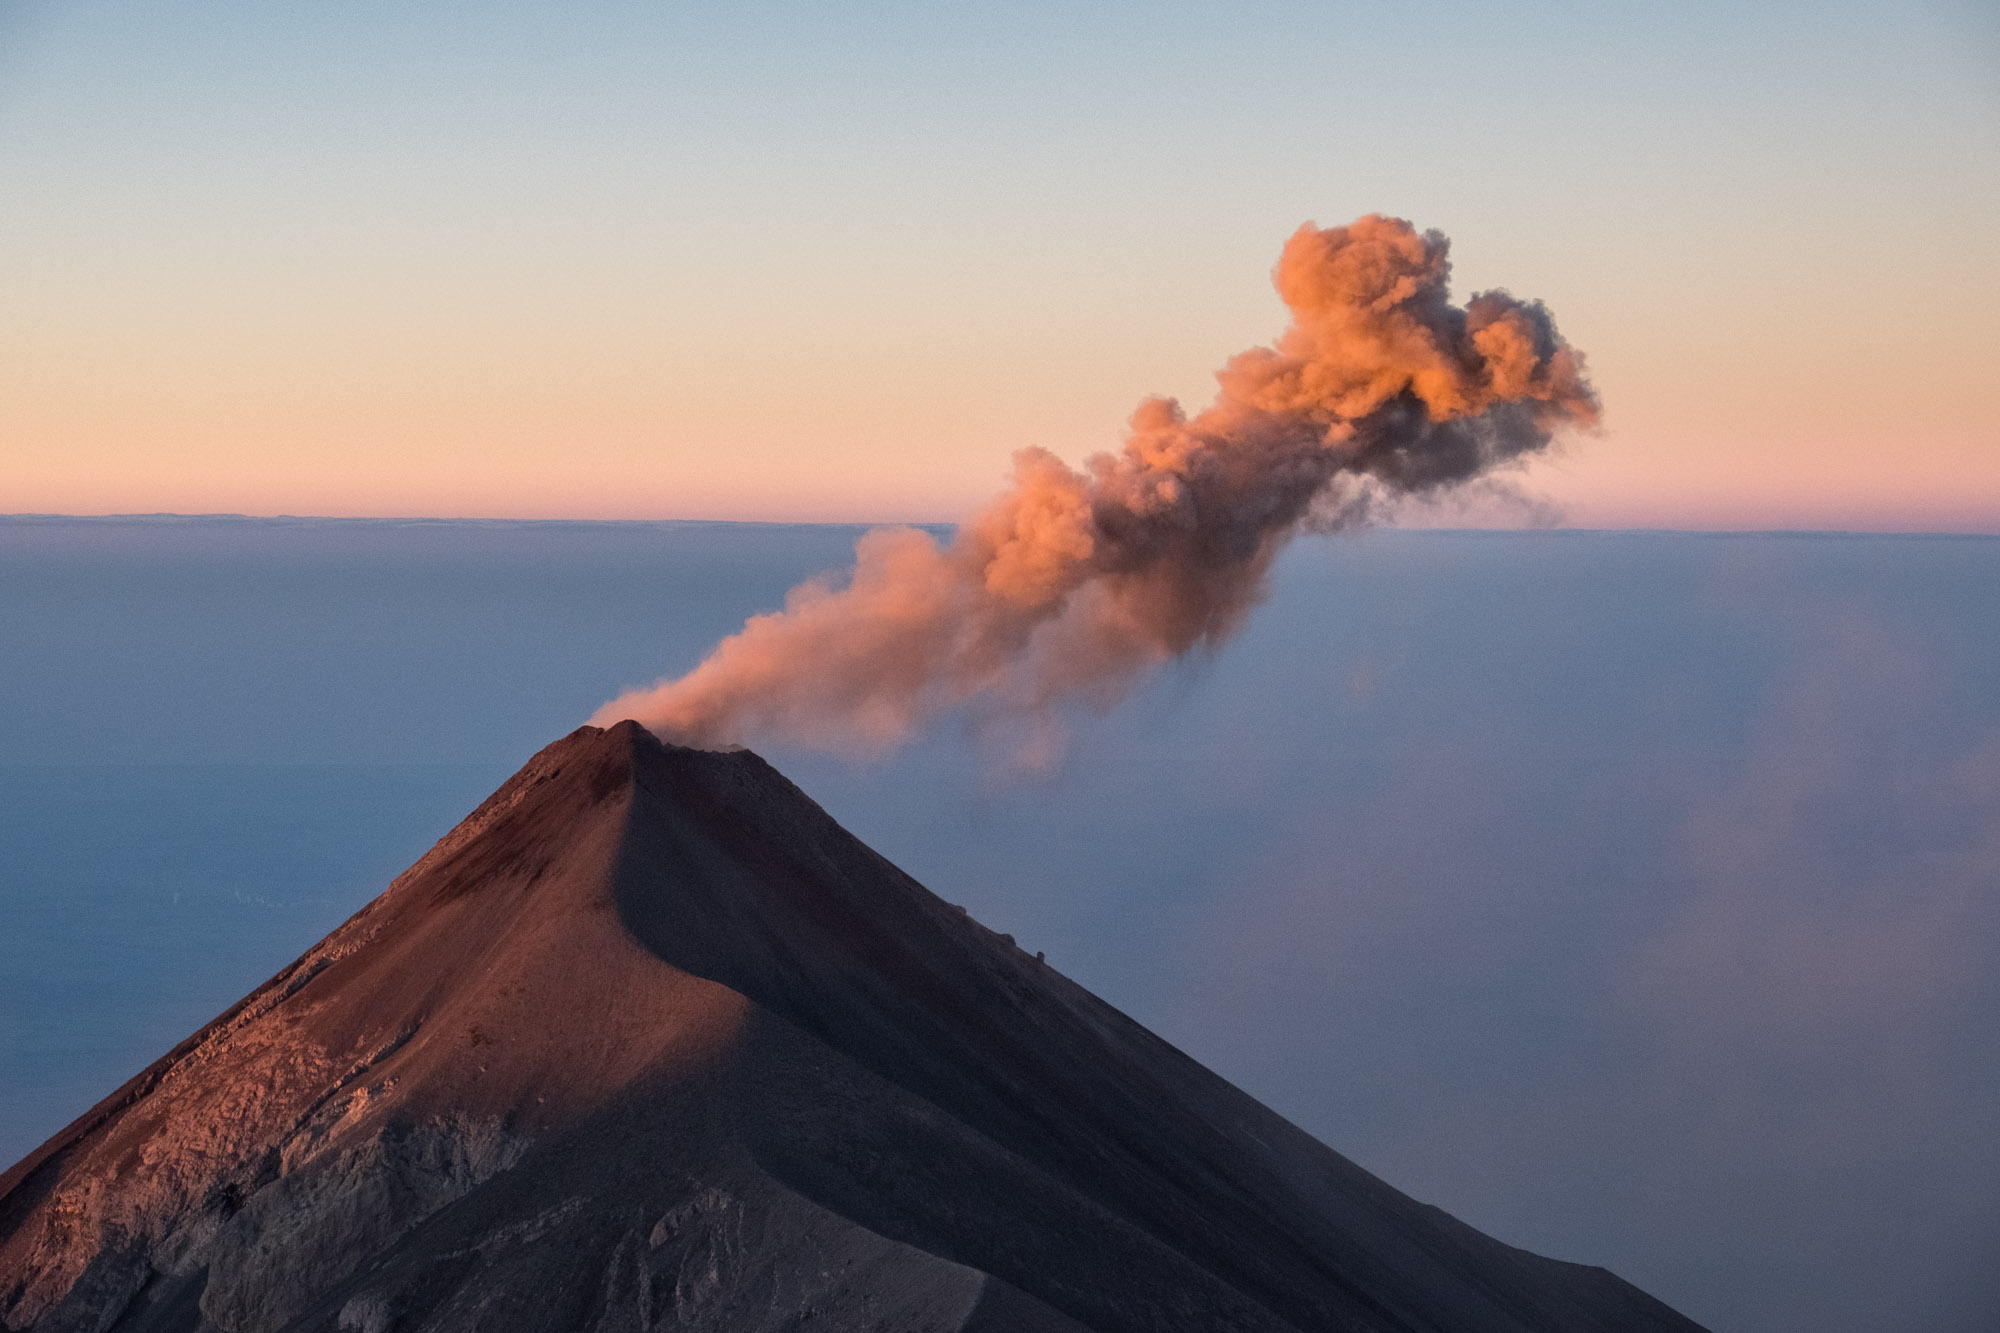 Fuego Volcan at sun rise